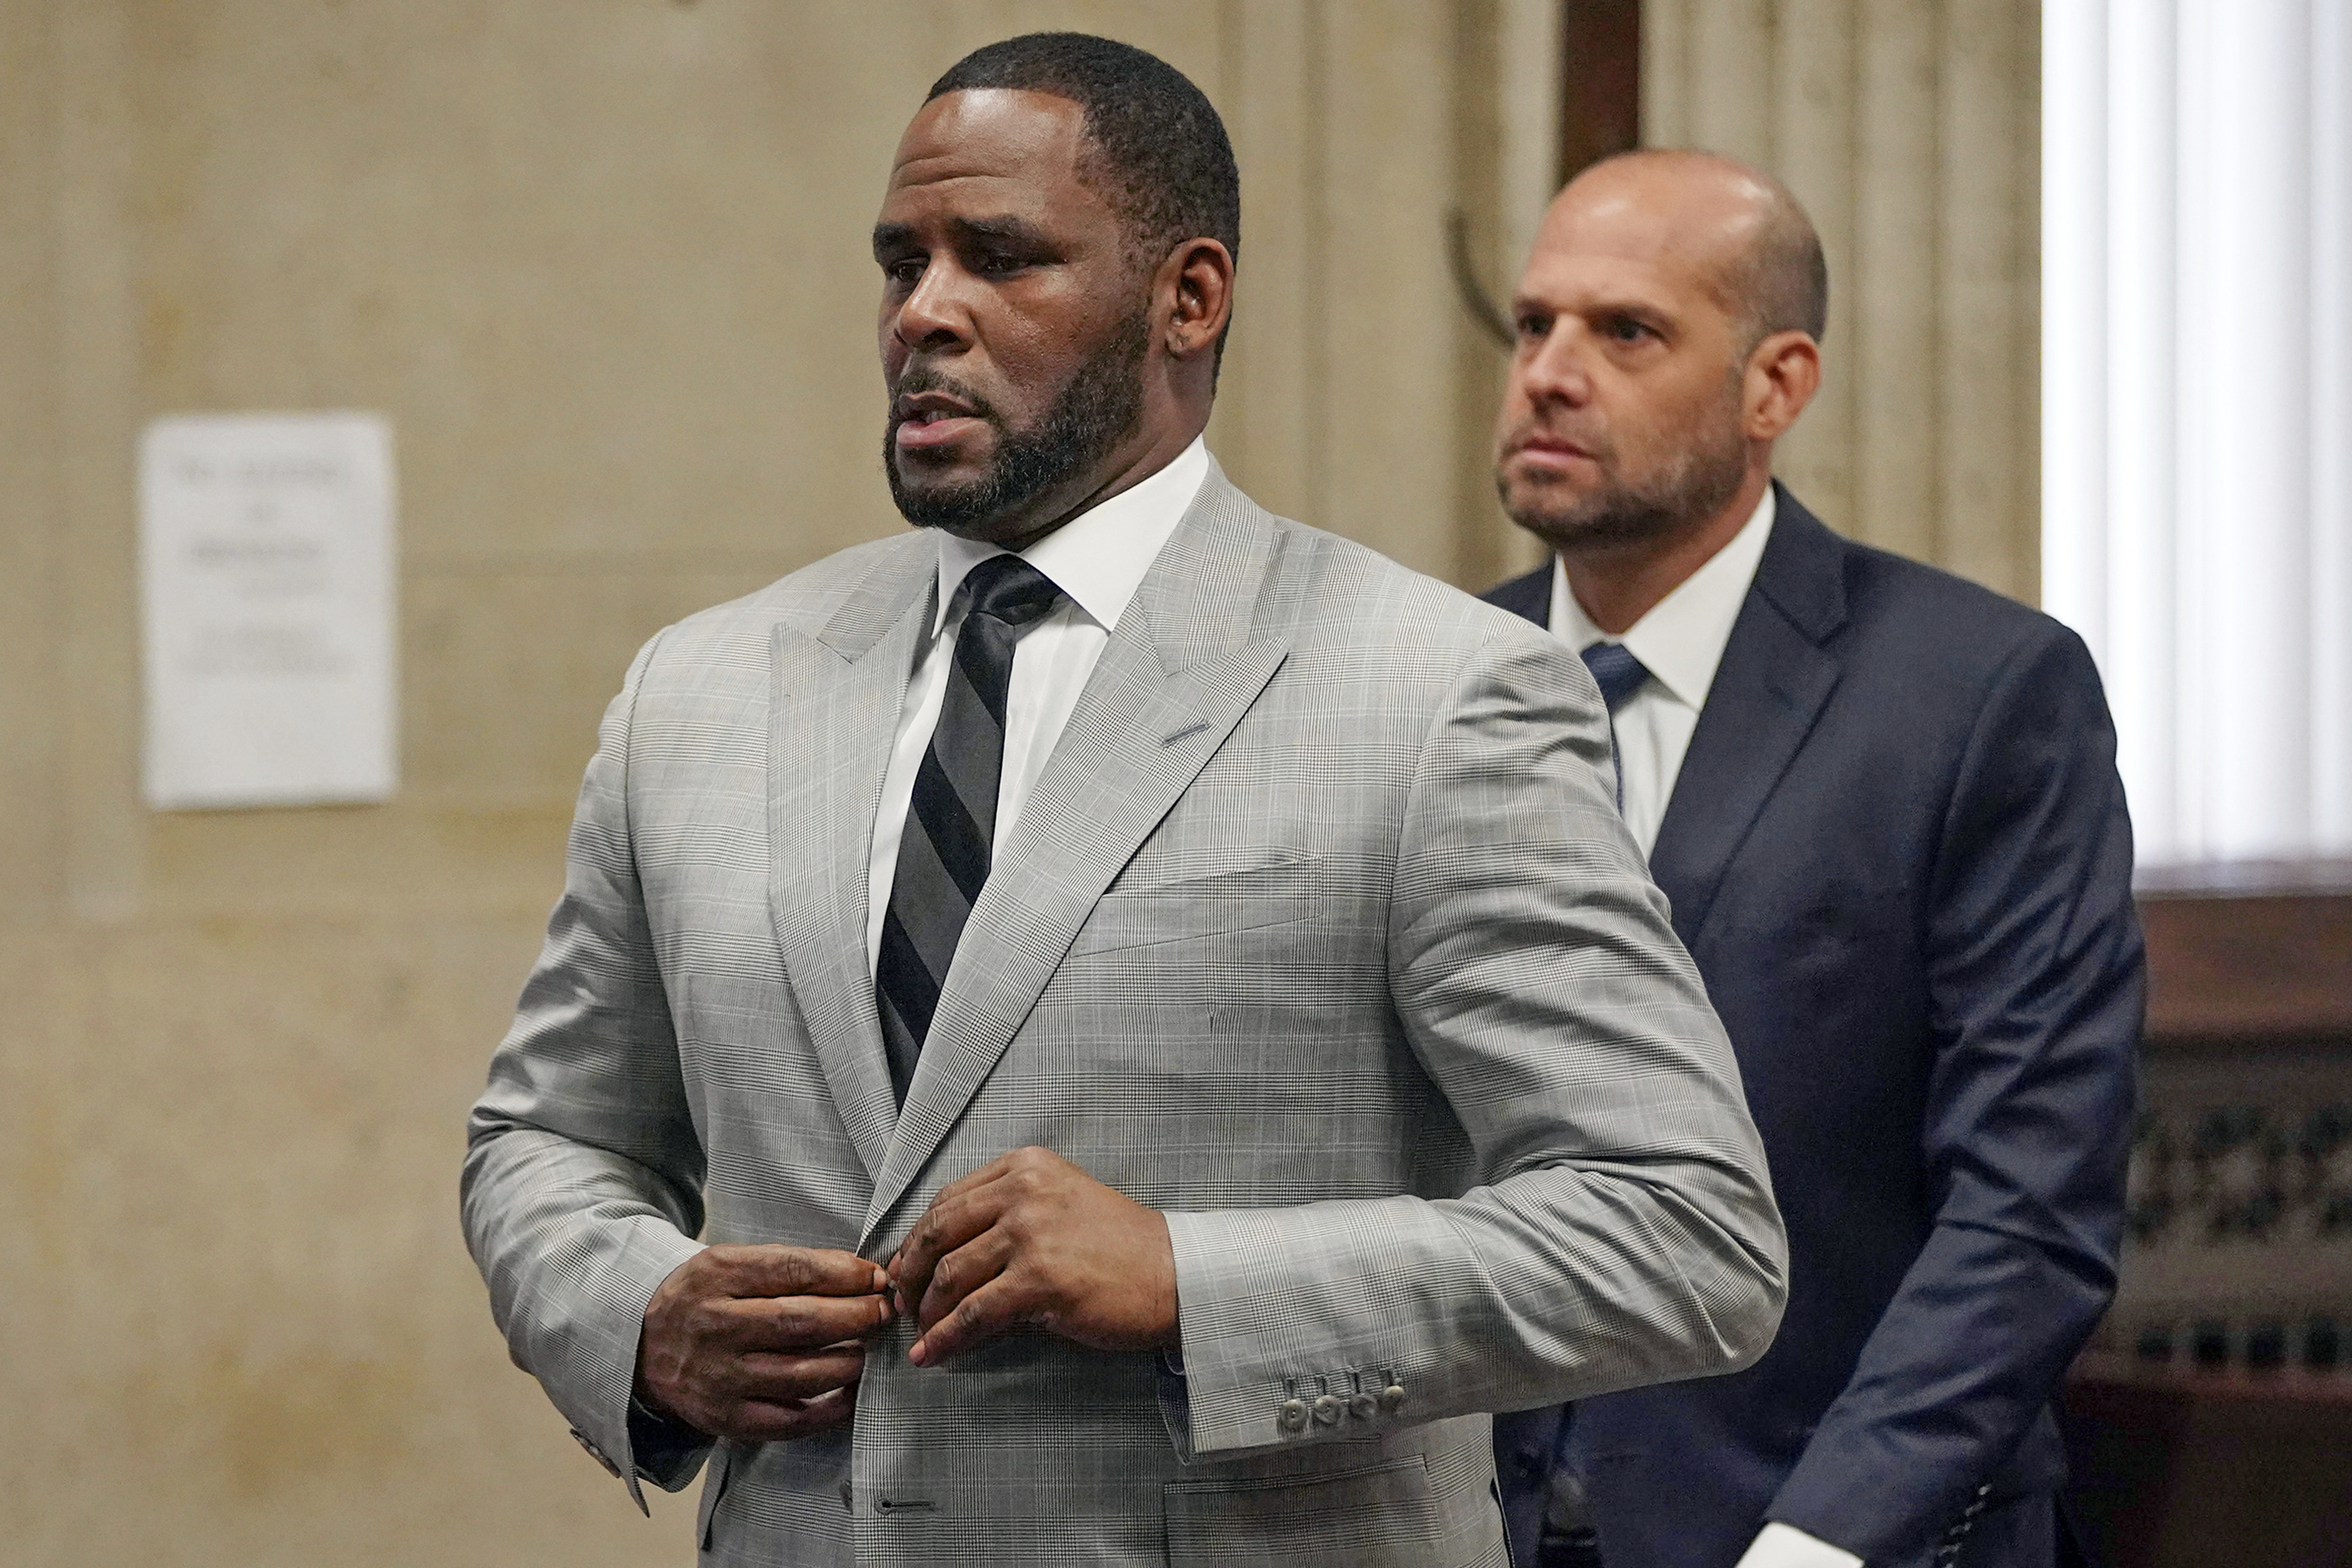 R. Kelly pleads not guilty; feds say new charges planned